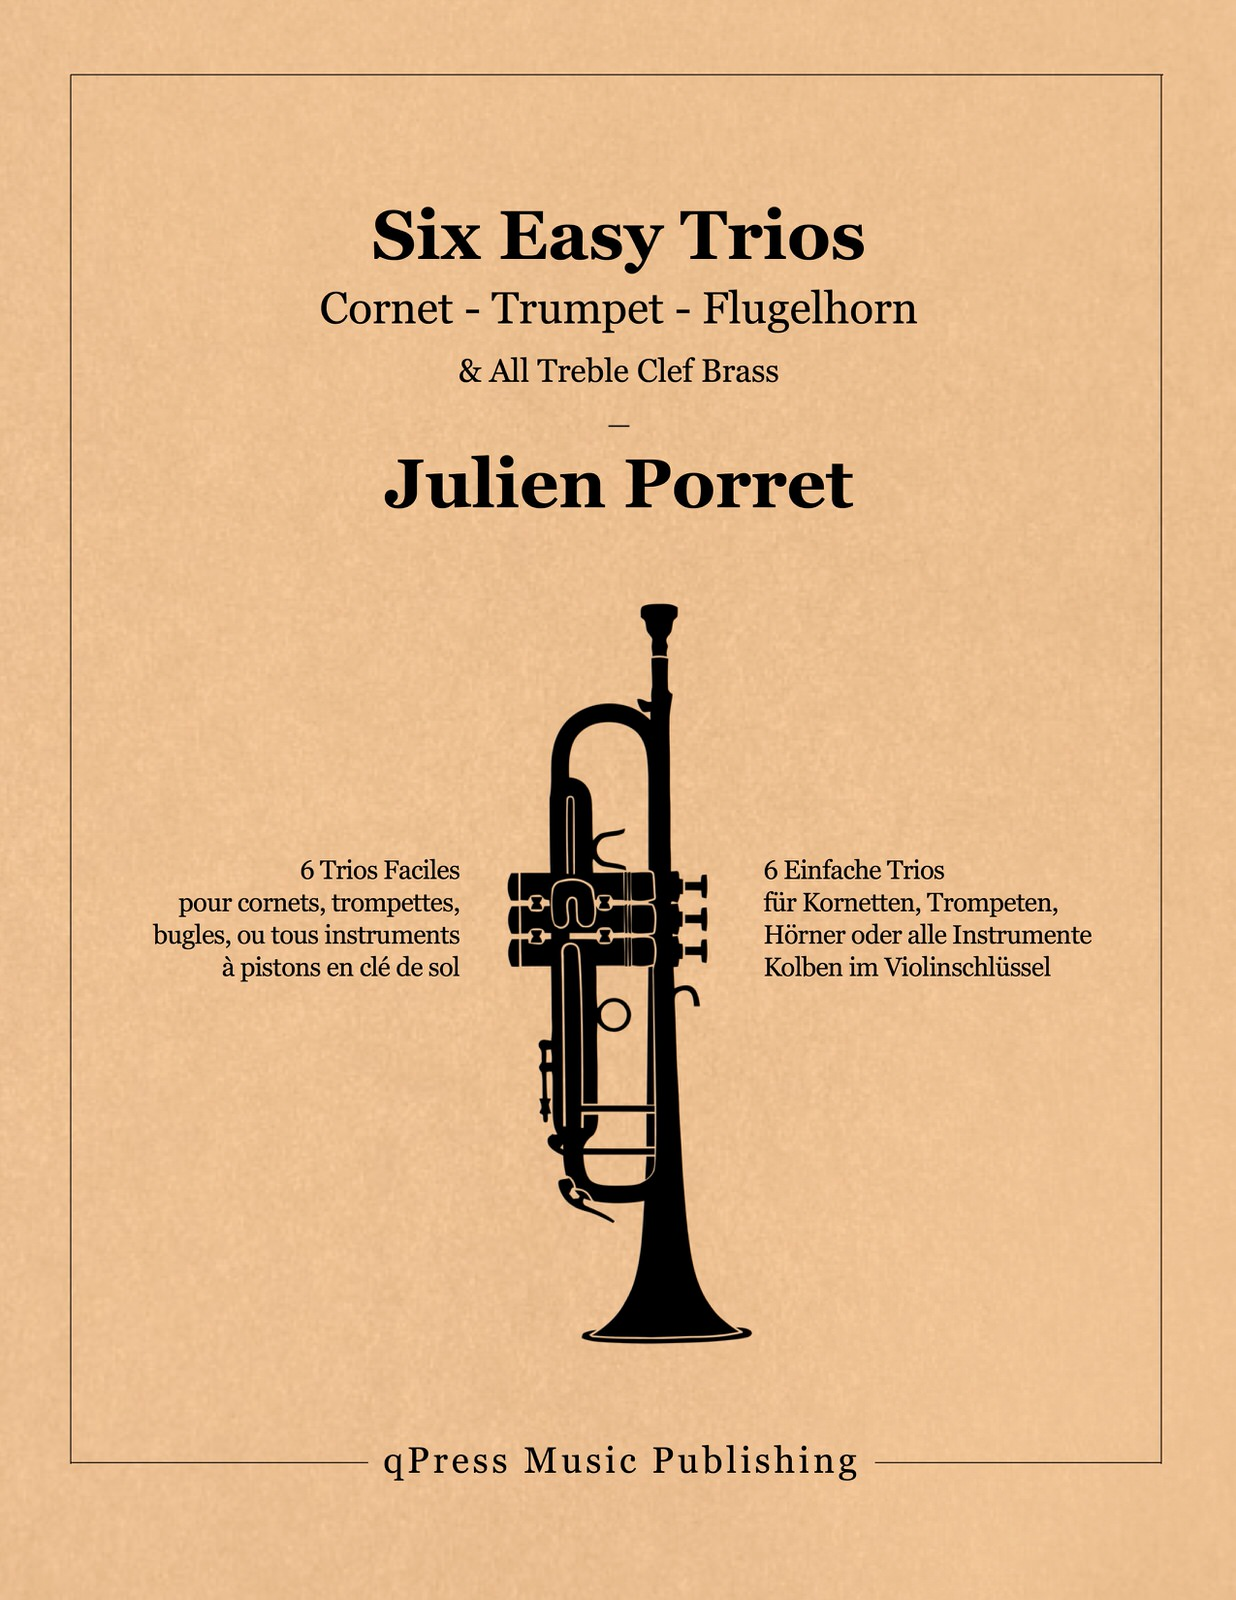 Porret, Six Easy Trios For Treble Clef Brass-p01